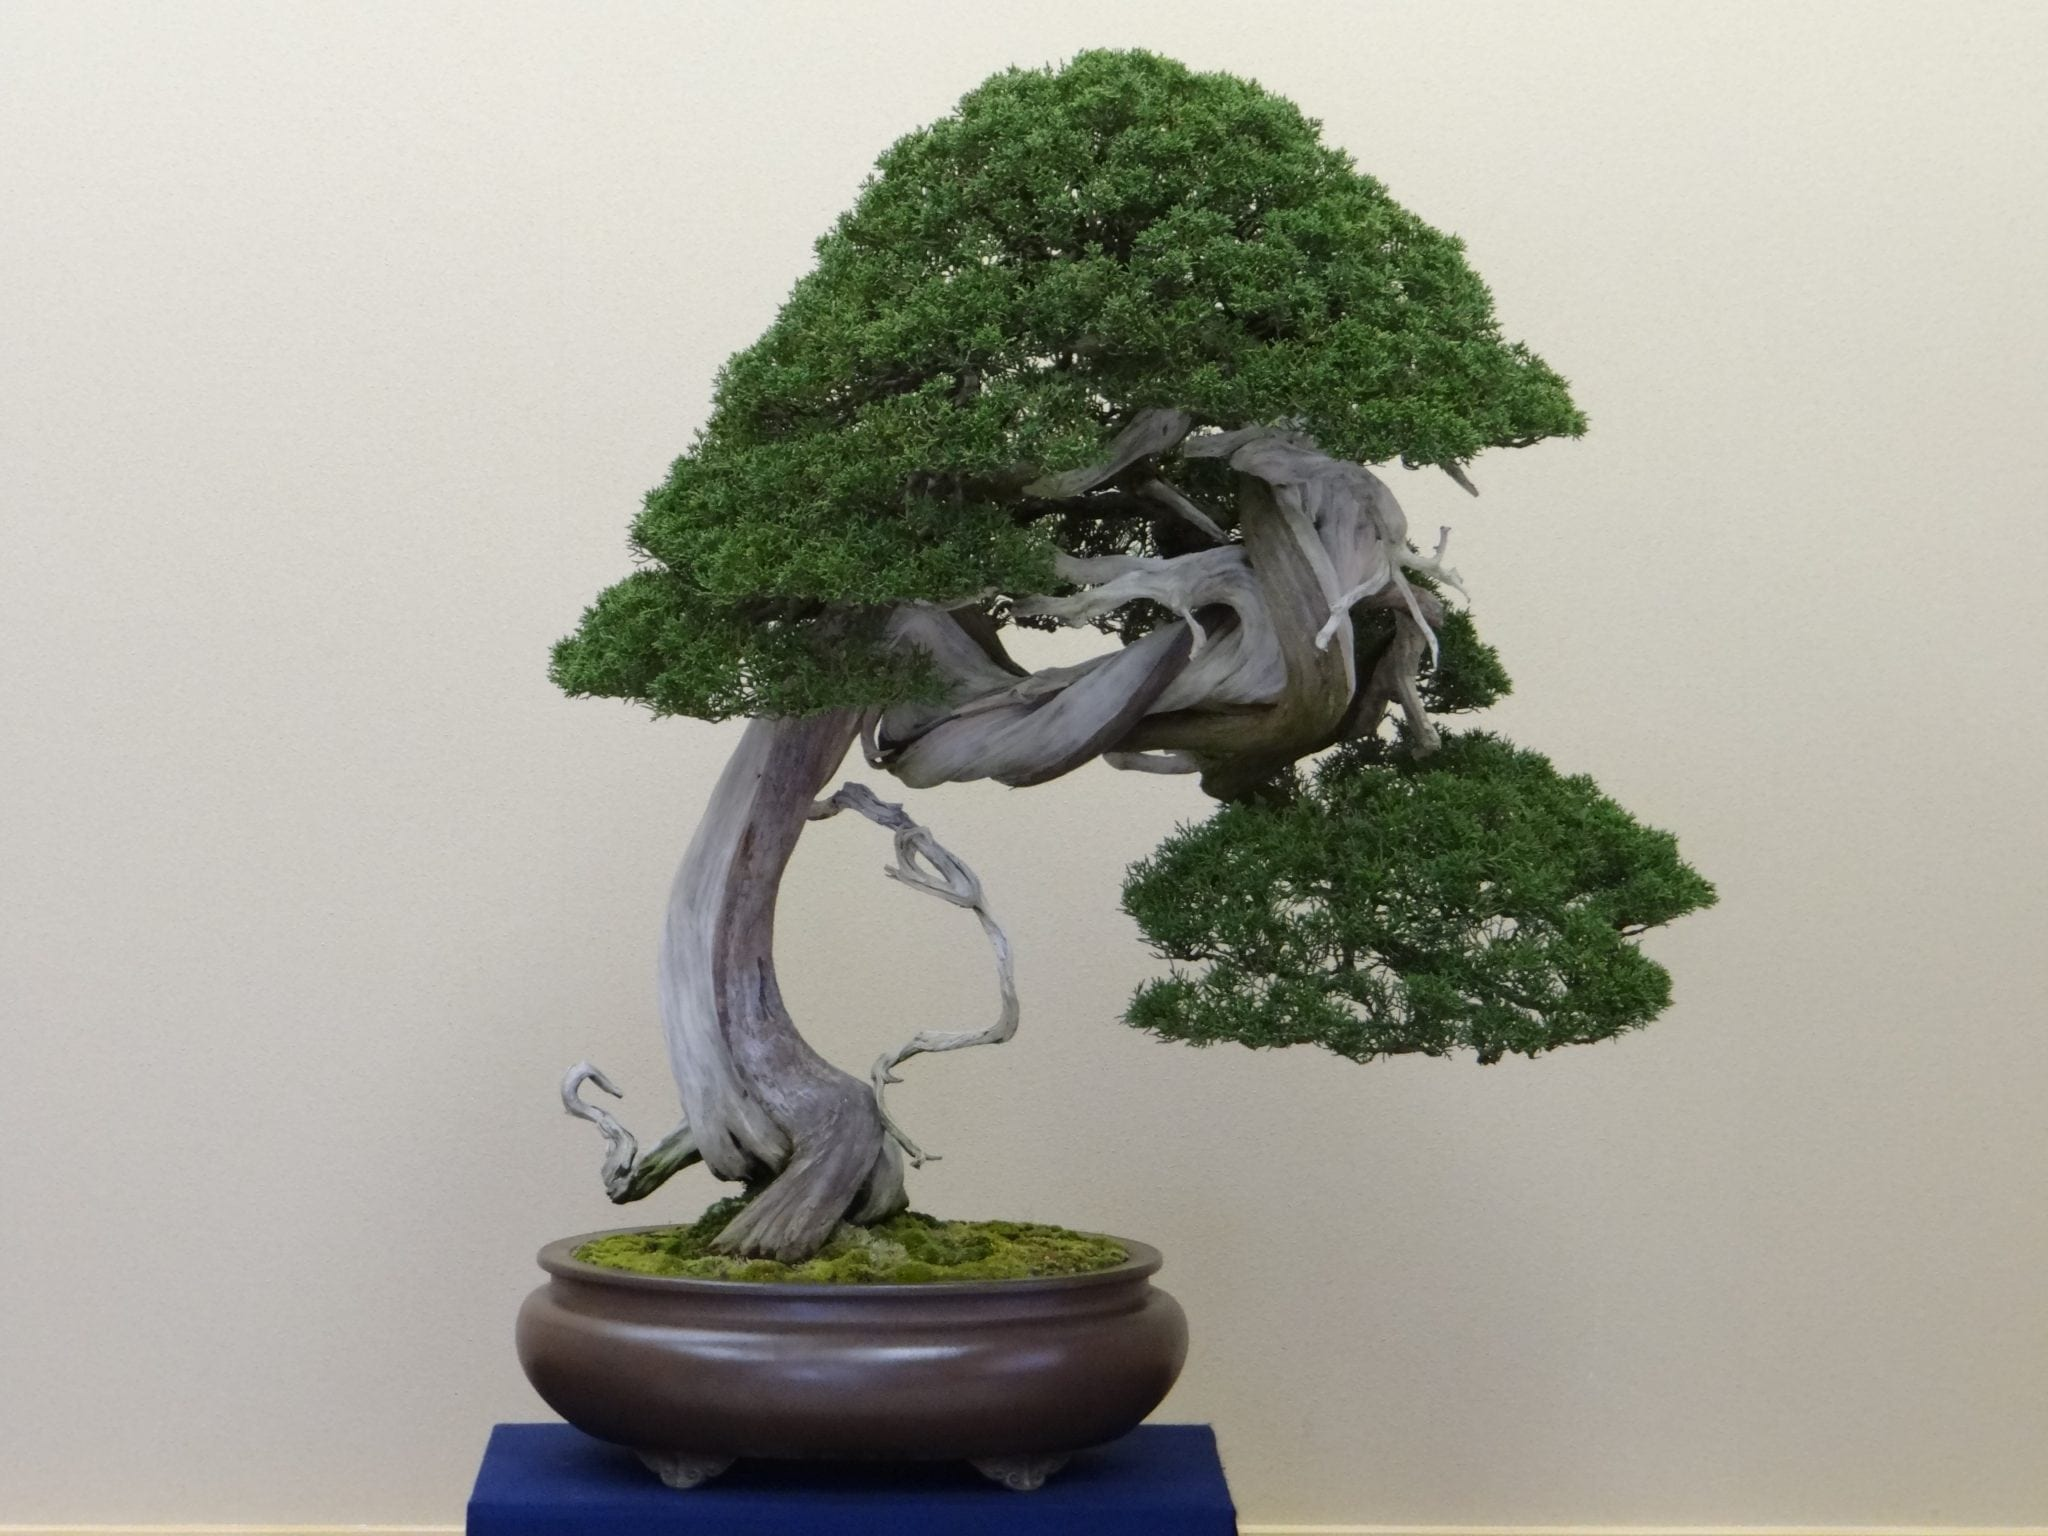 how to identify bonsai trees bonsai tree